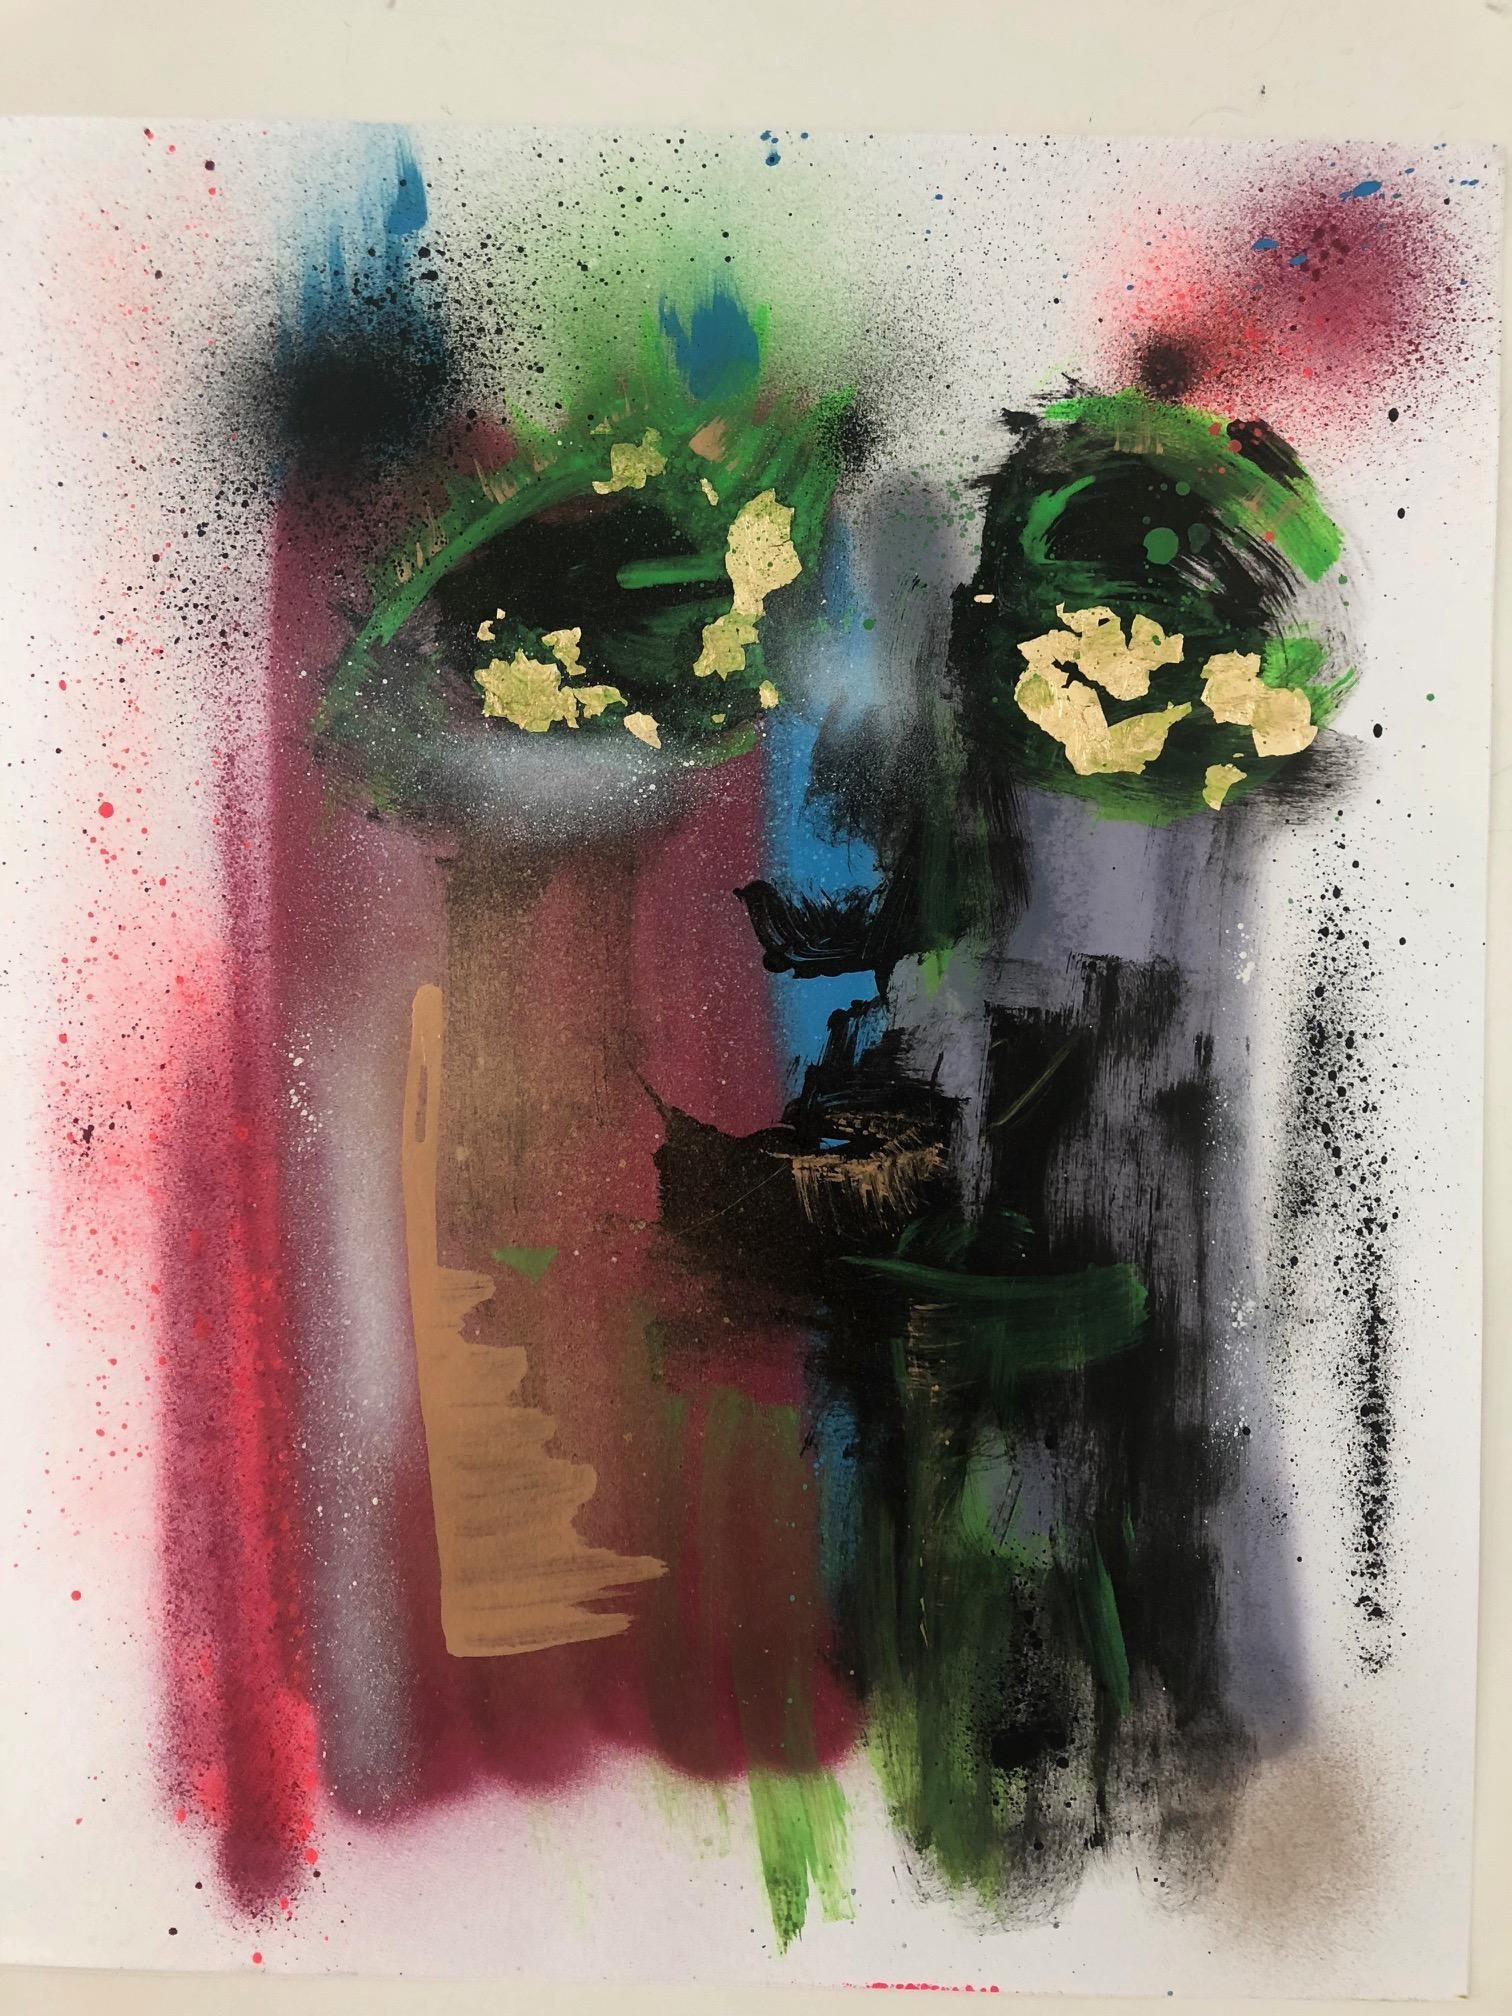 Down Play It - Expressionist Style, bold colors, Mixed Media on Archival Paper